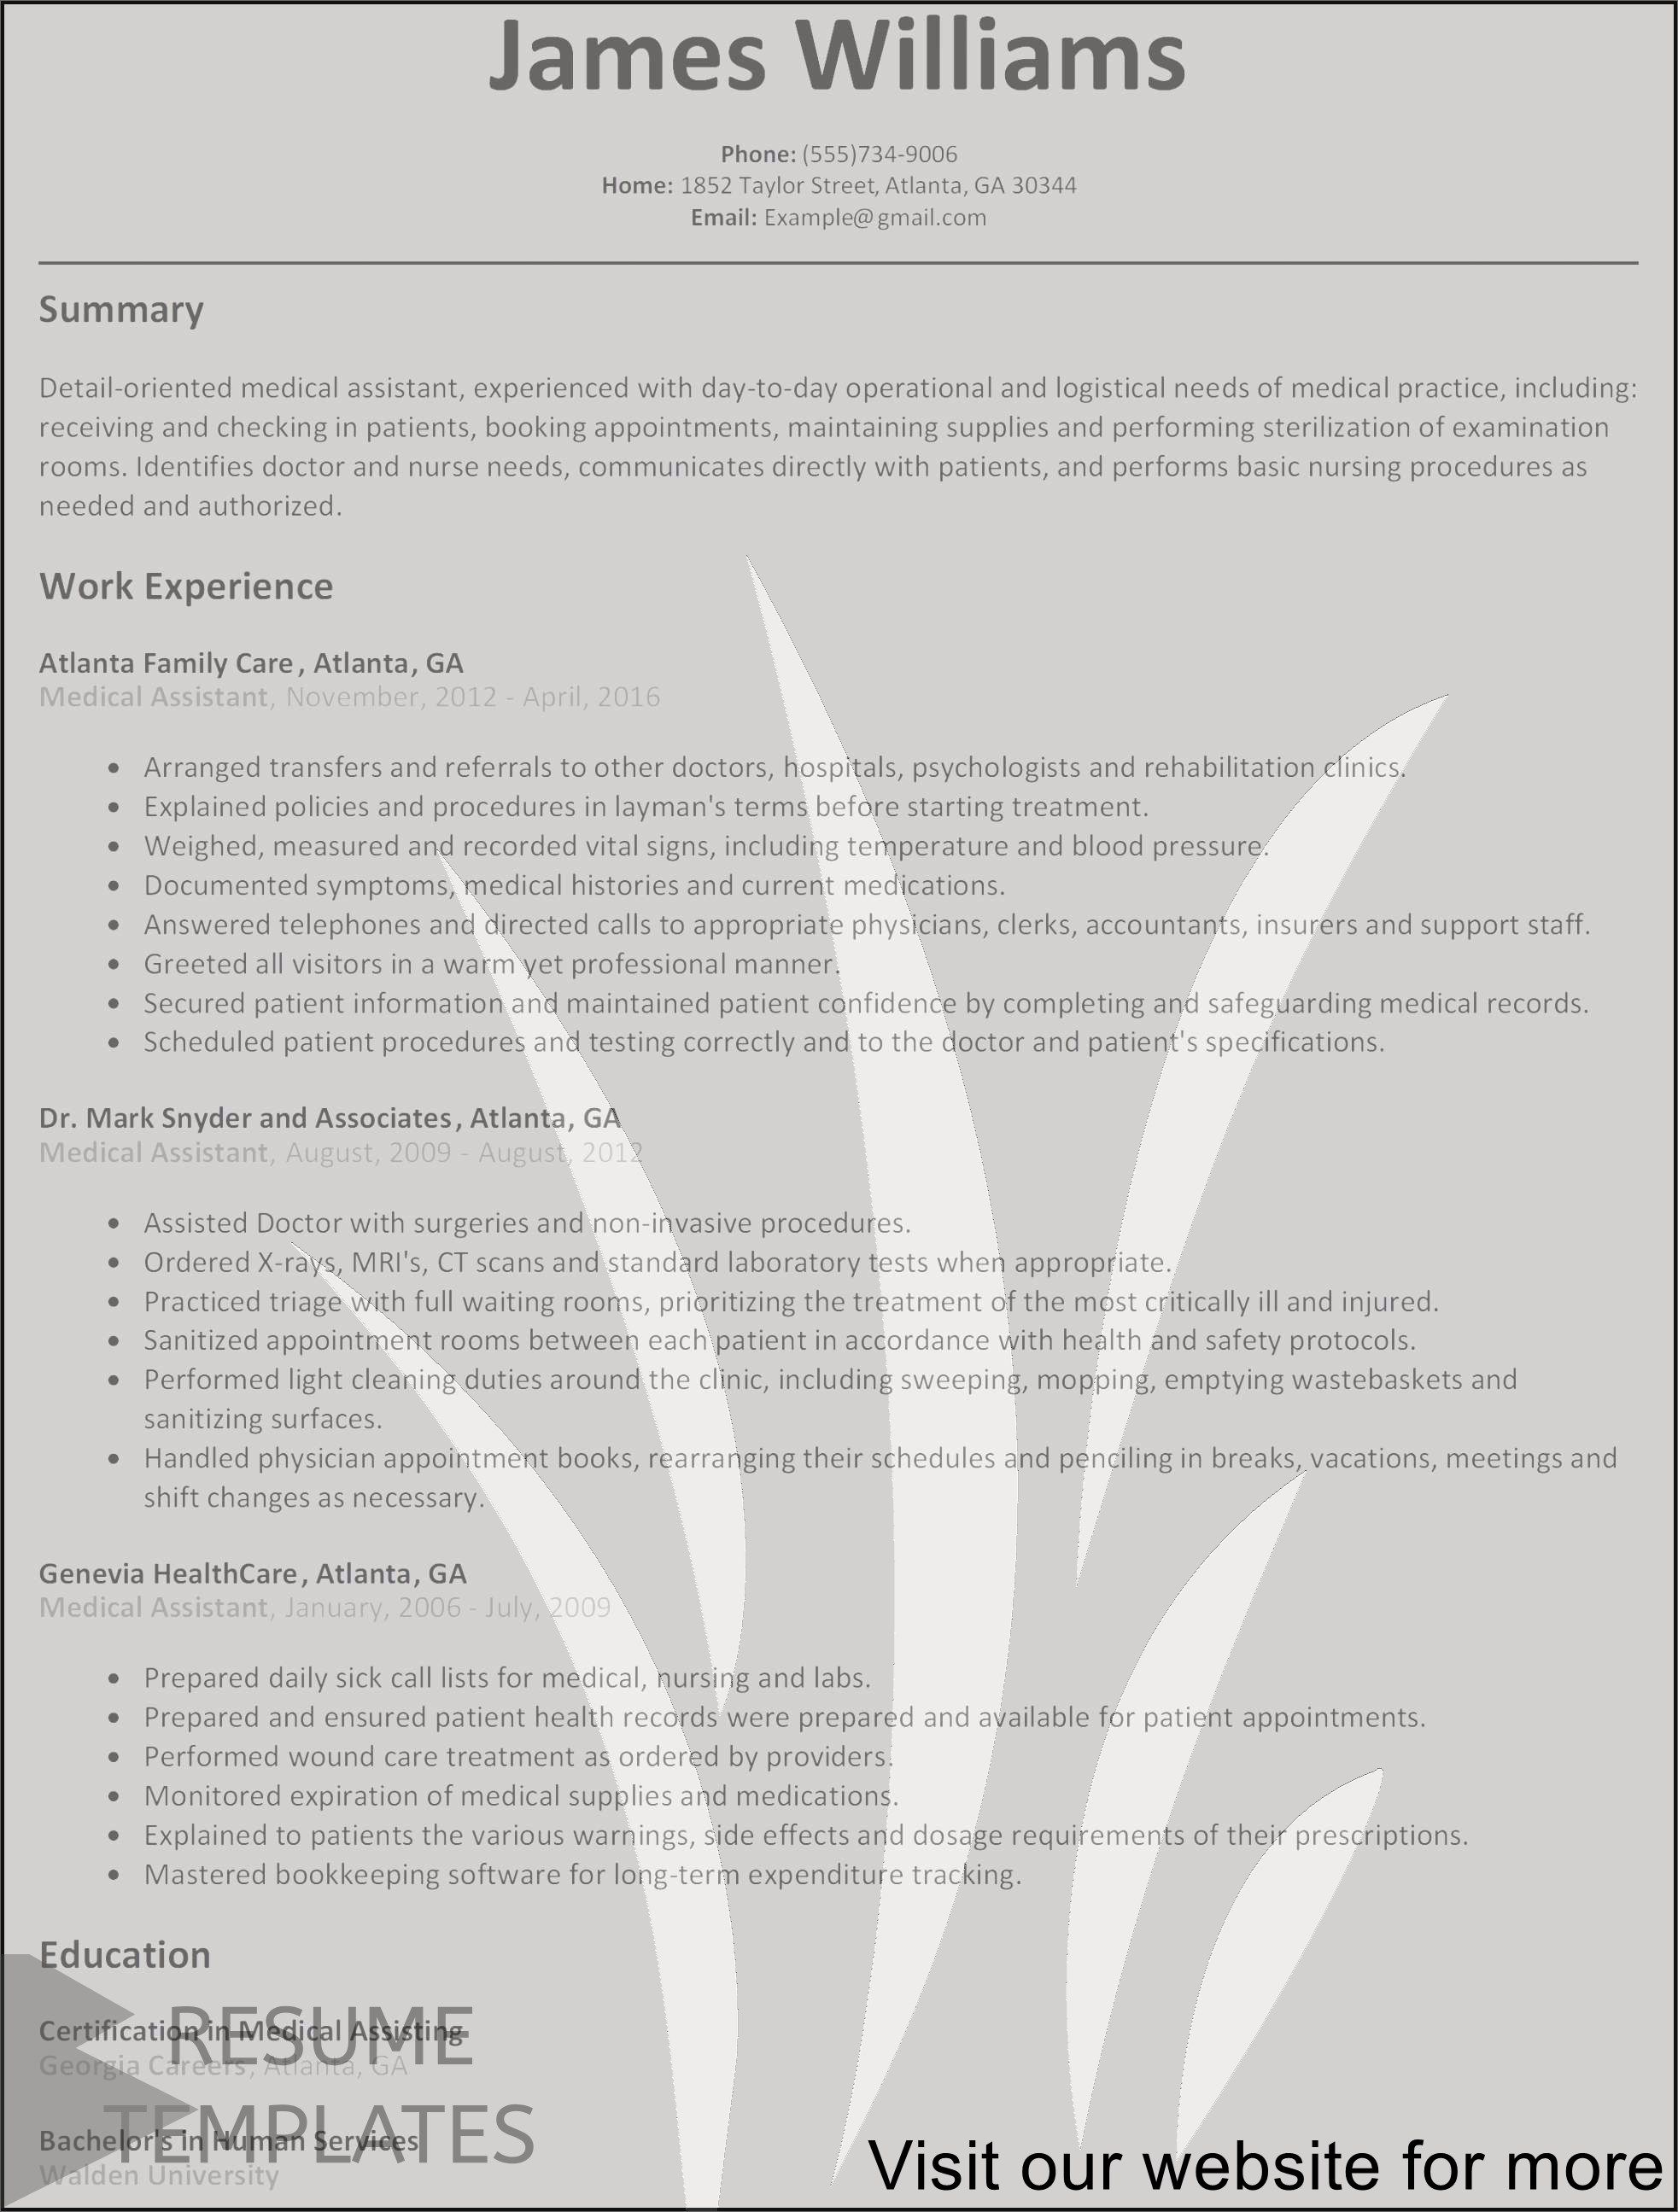 resume examples no experience in 2020 Basic resume